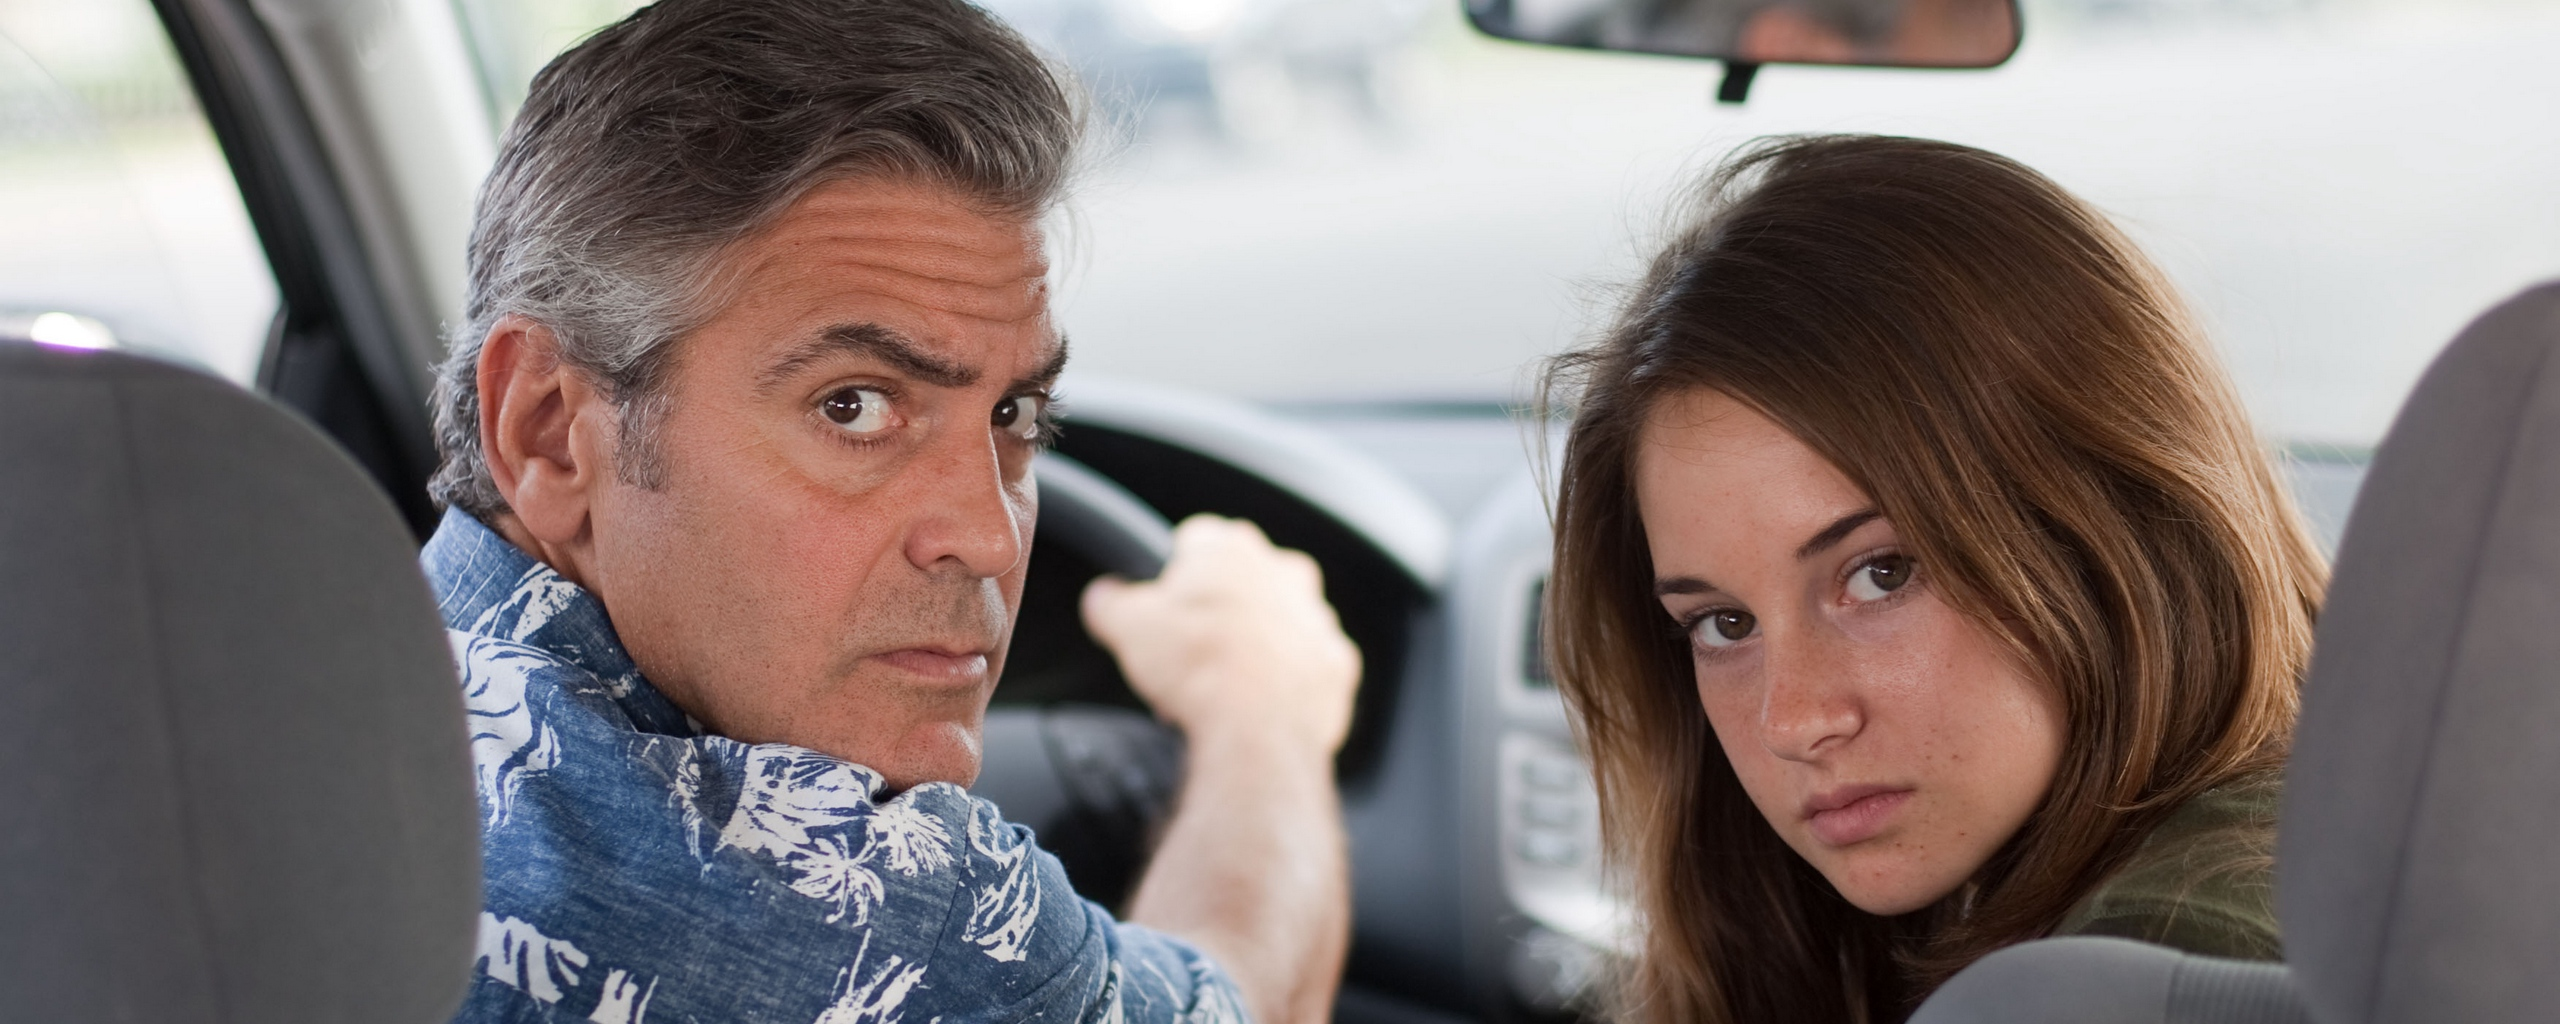 Download wallpaper 2560x1024 the descendants george clooney 2560x1024